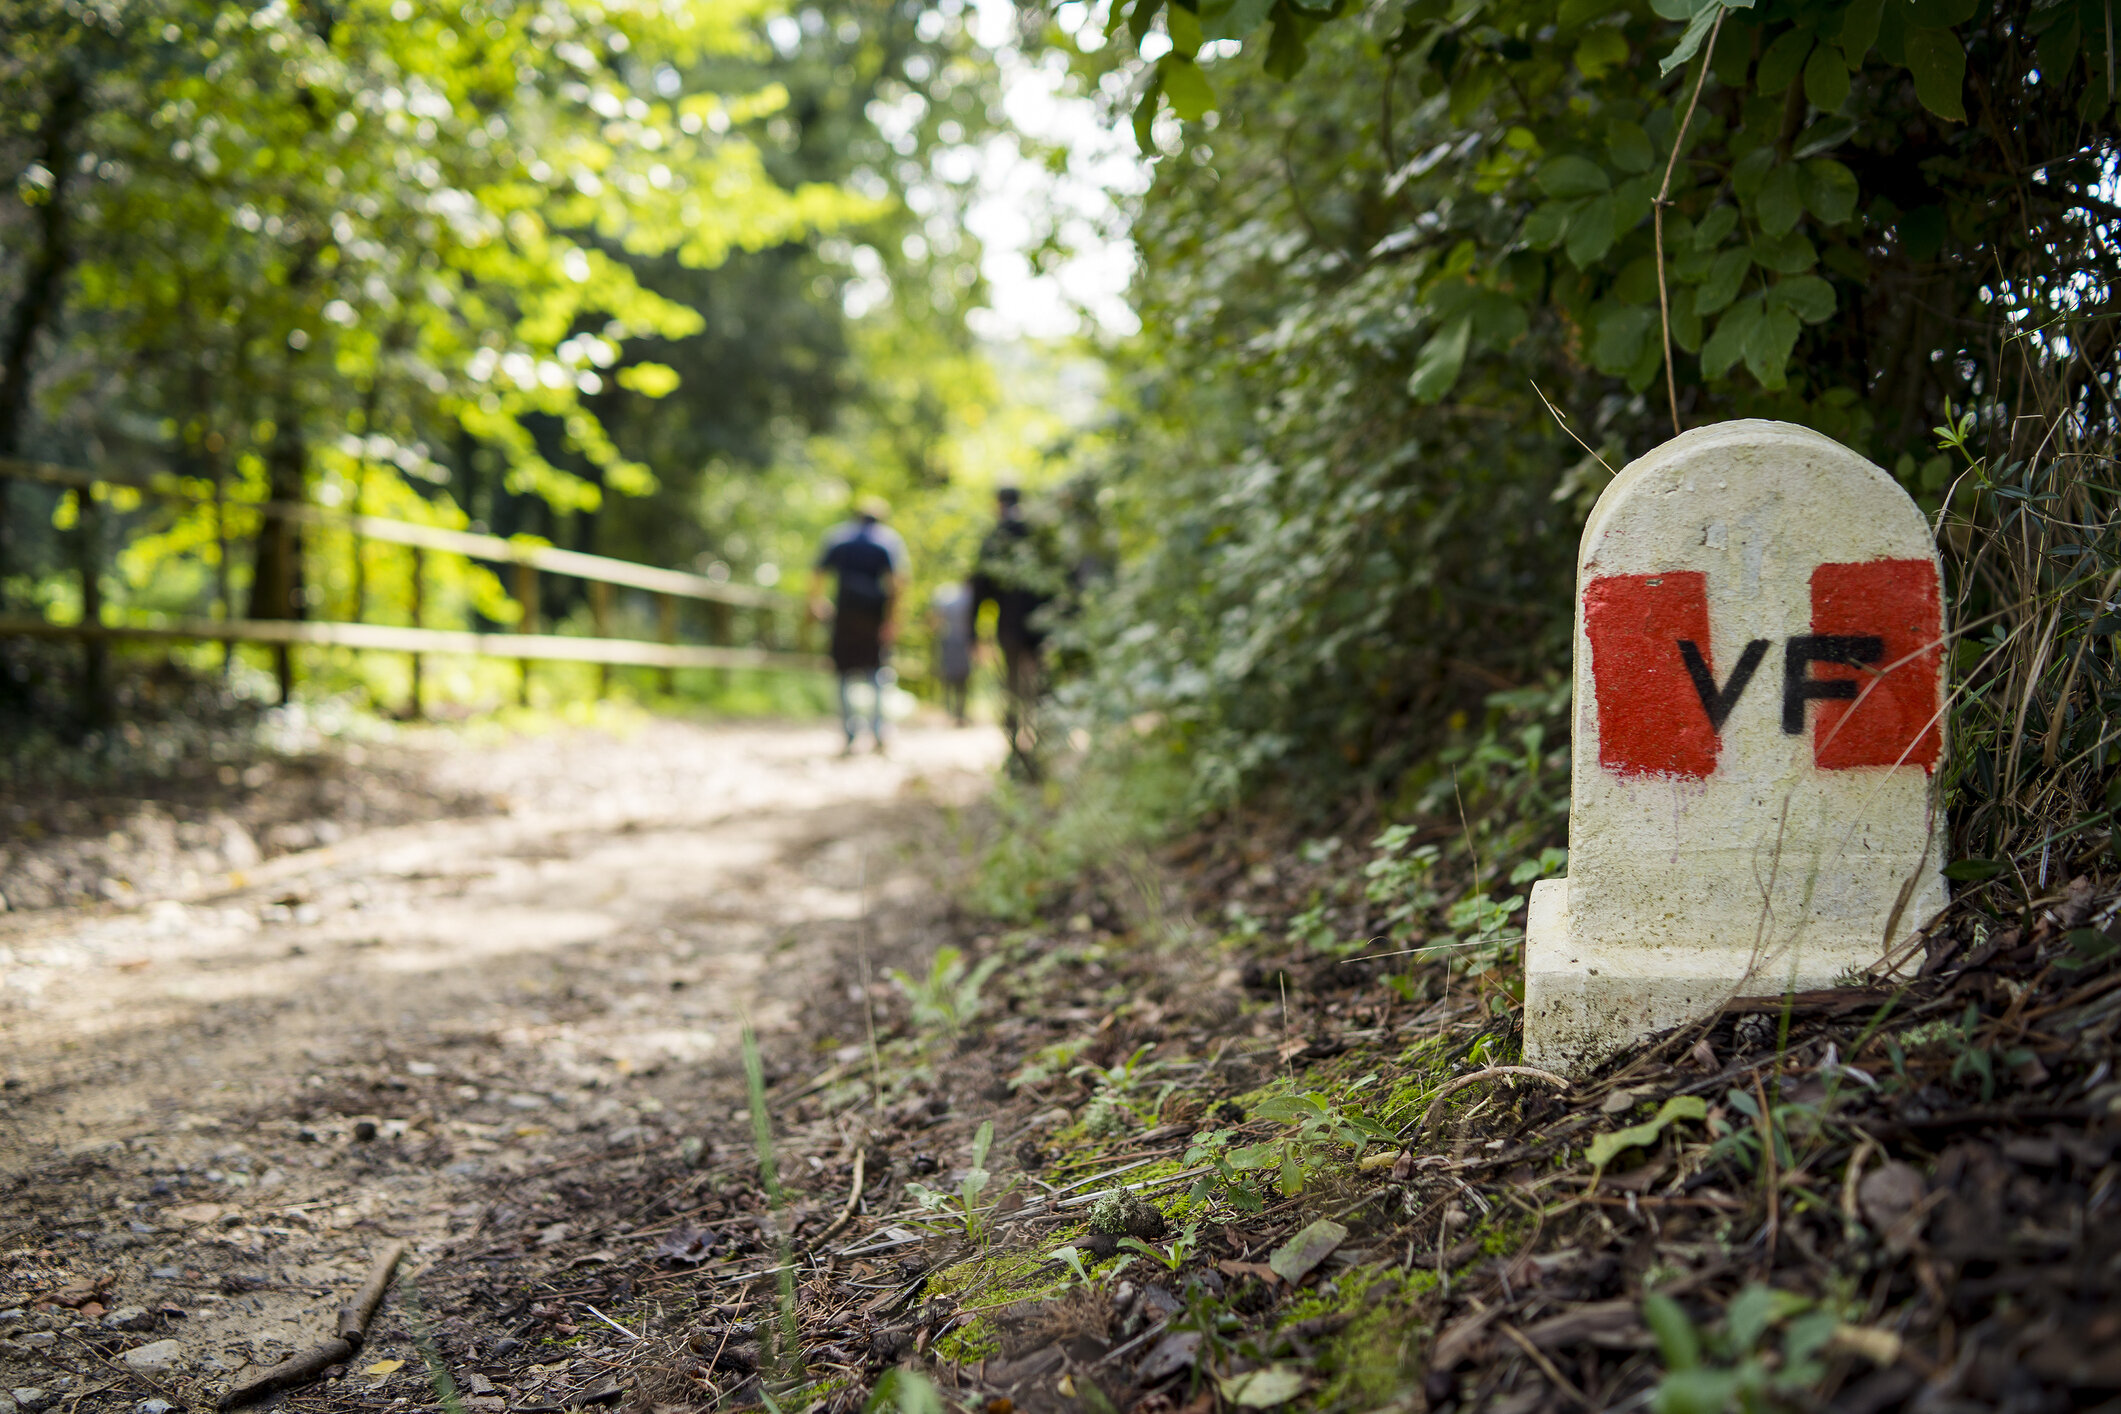 The Via Francigena - The Via Francigena, the medieval pilgrimage route that in the Middle Ages connected the English city of Canterbury, through Switzerland and France, to Rome, runs next to the walls of Capranica and still today is visited by many pilgrims and wayfarers.